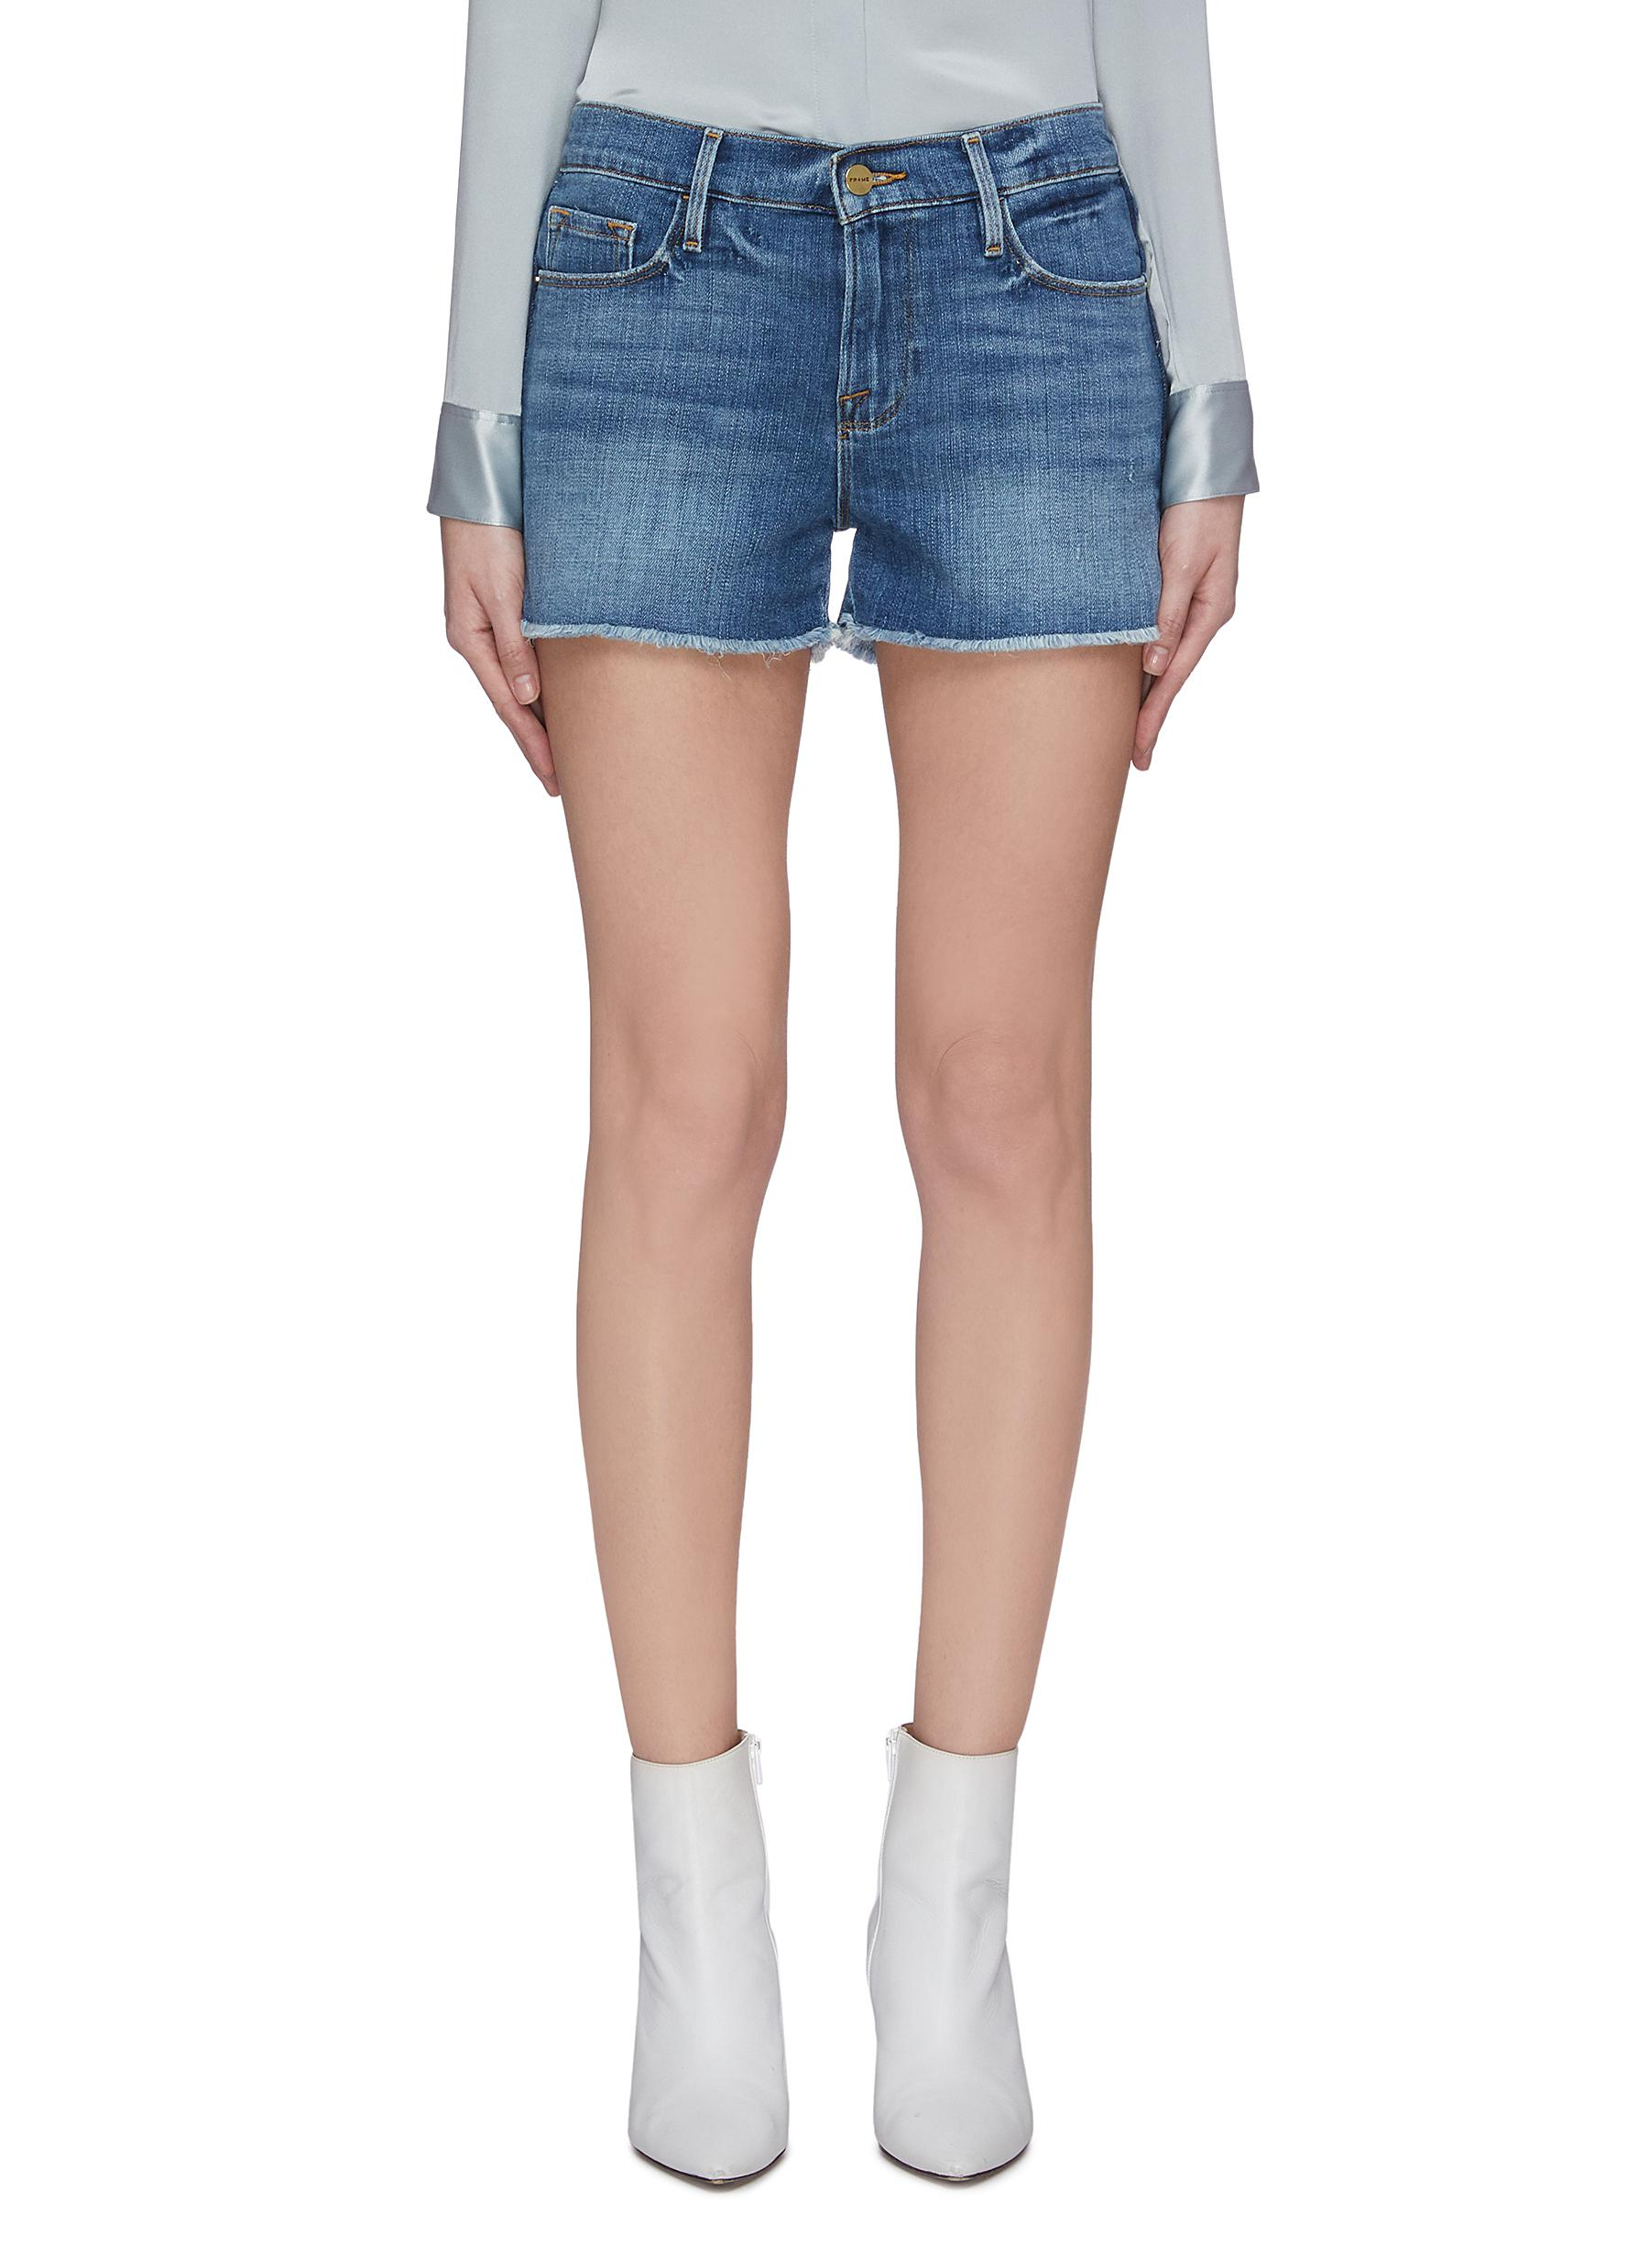 Buy Frame Denim Jeans 'Le Cut Off' released hem stripe outseam denim shorts